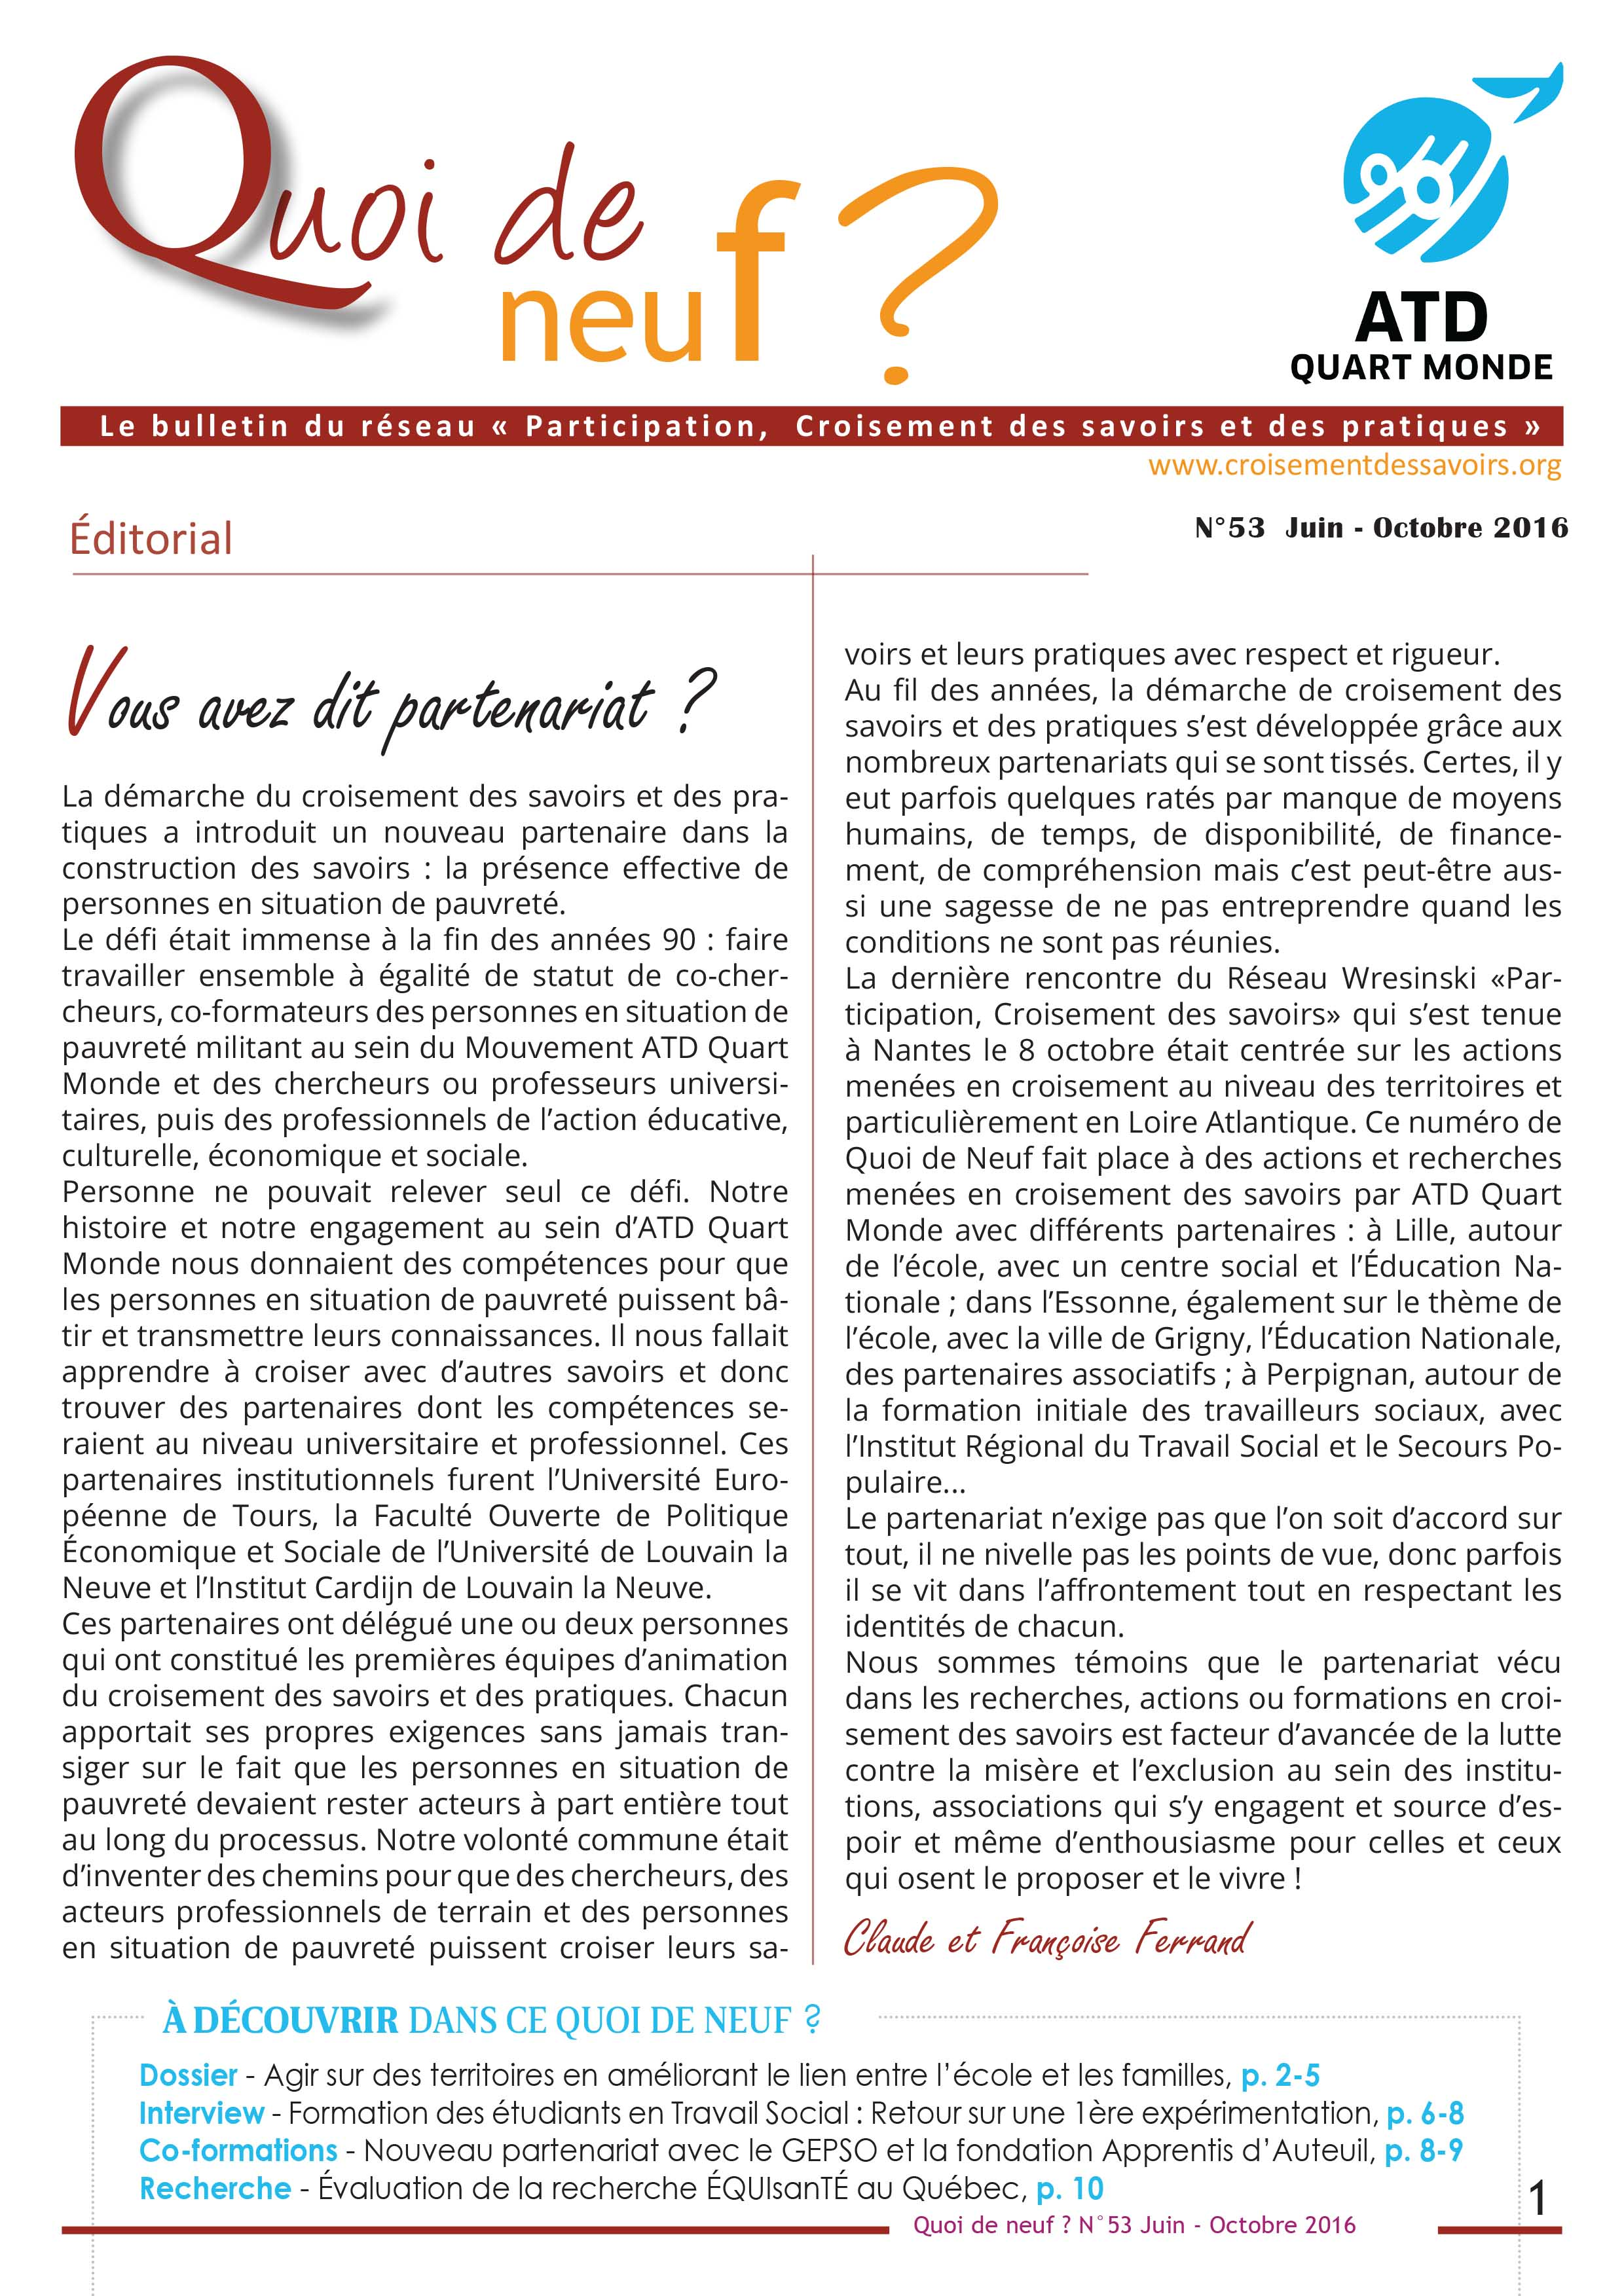 quoideneuf-n53-1ere-page